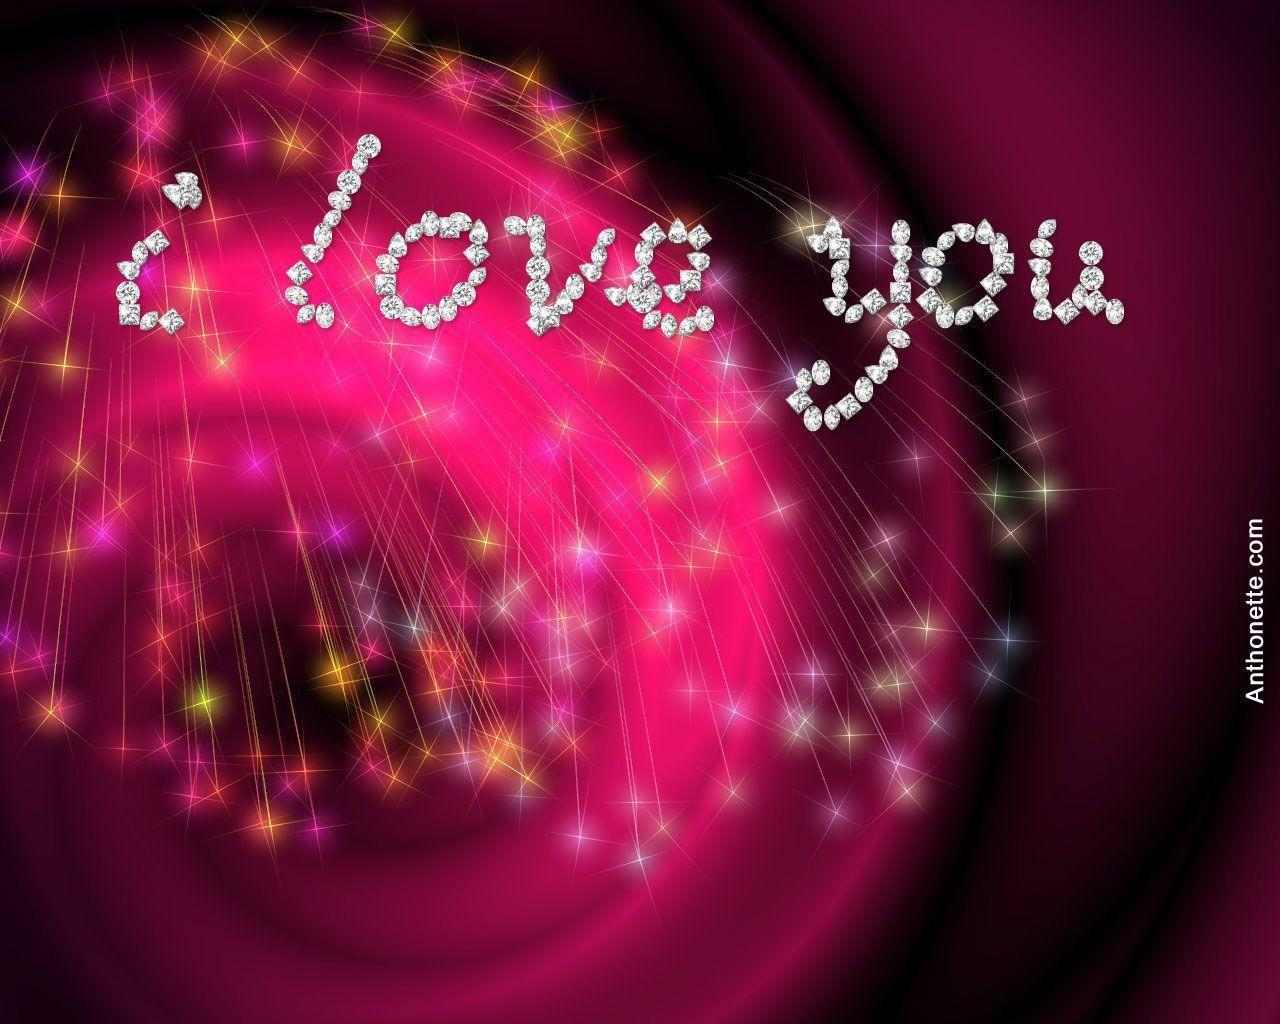 Small Love Wallpaper For Mobile : I Love You Wallpapers - Wallpaper cave